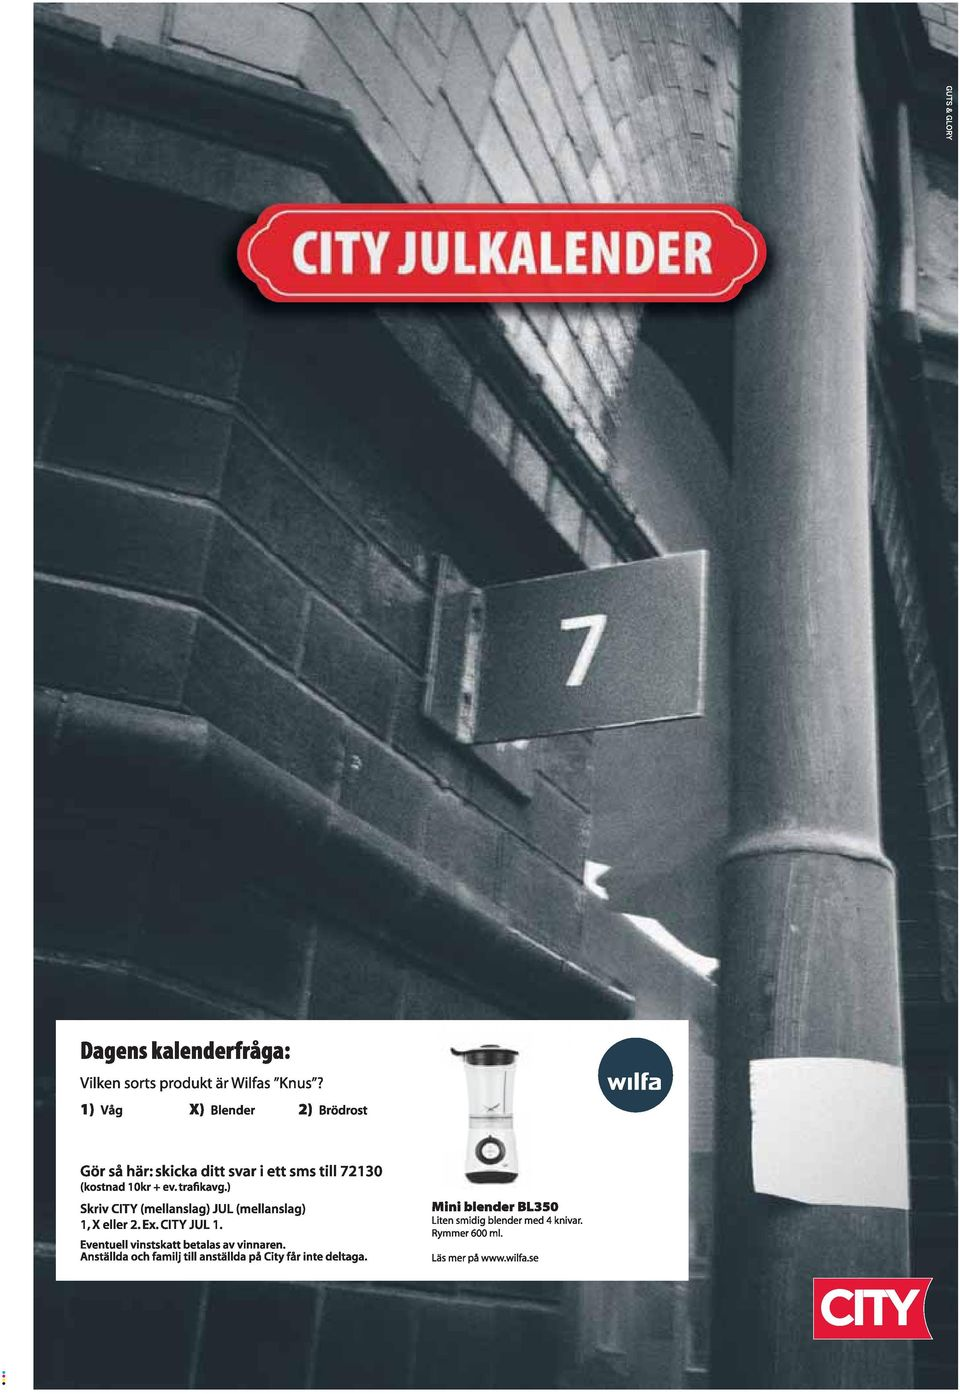 ) Skriv CITY (mellanslag) JUL (mellanslag) 1, X eller. Ex. CITY JUL 1. Eventuell vinstskatt betalas av vinnaren.